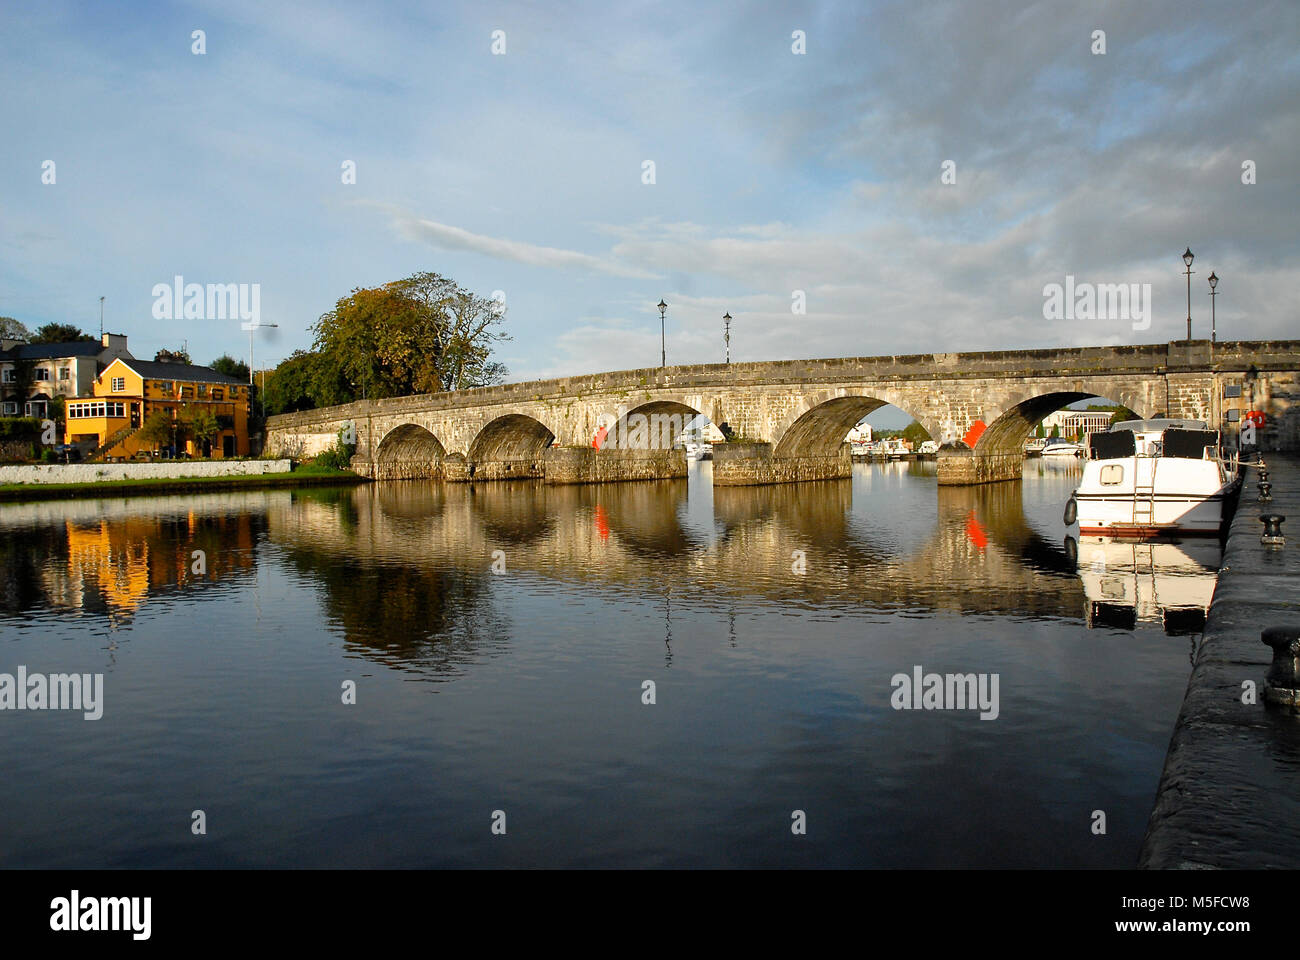 The 1846 bridge at Carrick-on-Shannon, on the River Shannon, links Co Leitrim and Co Roscommon, in the Republic - Stock Image